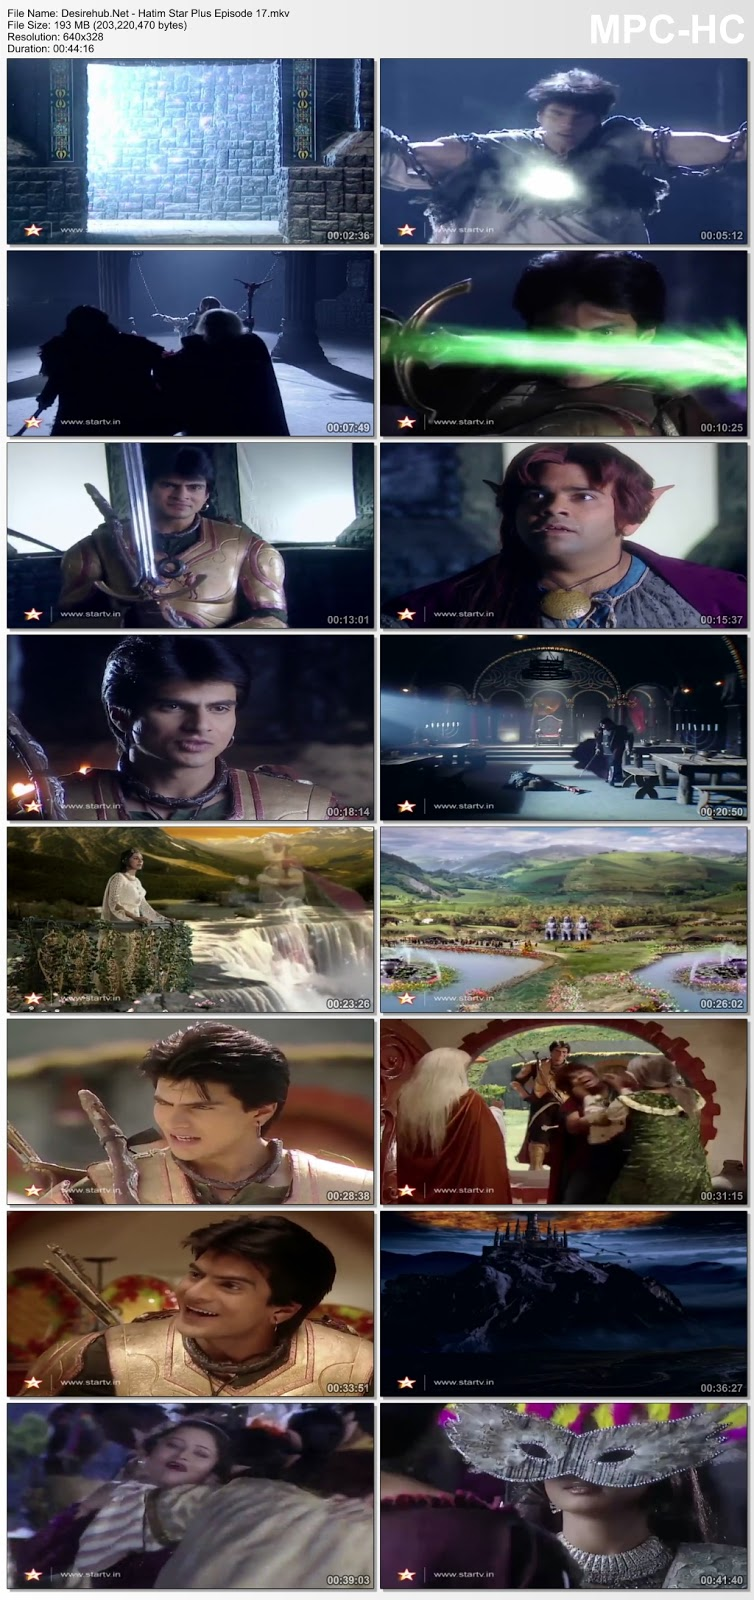 Hatim episode 17 | The Adventures of Hatim Download All 68 Episodes